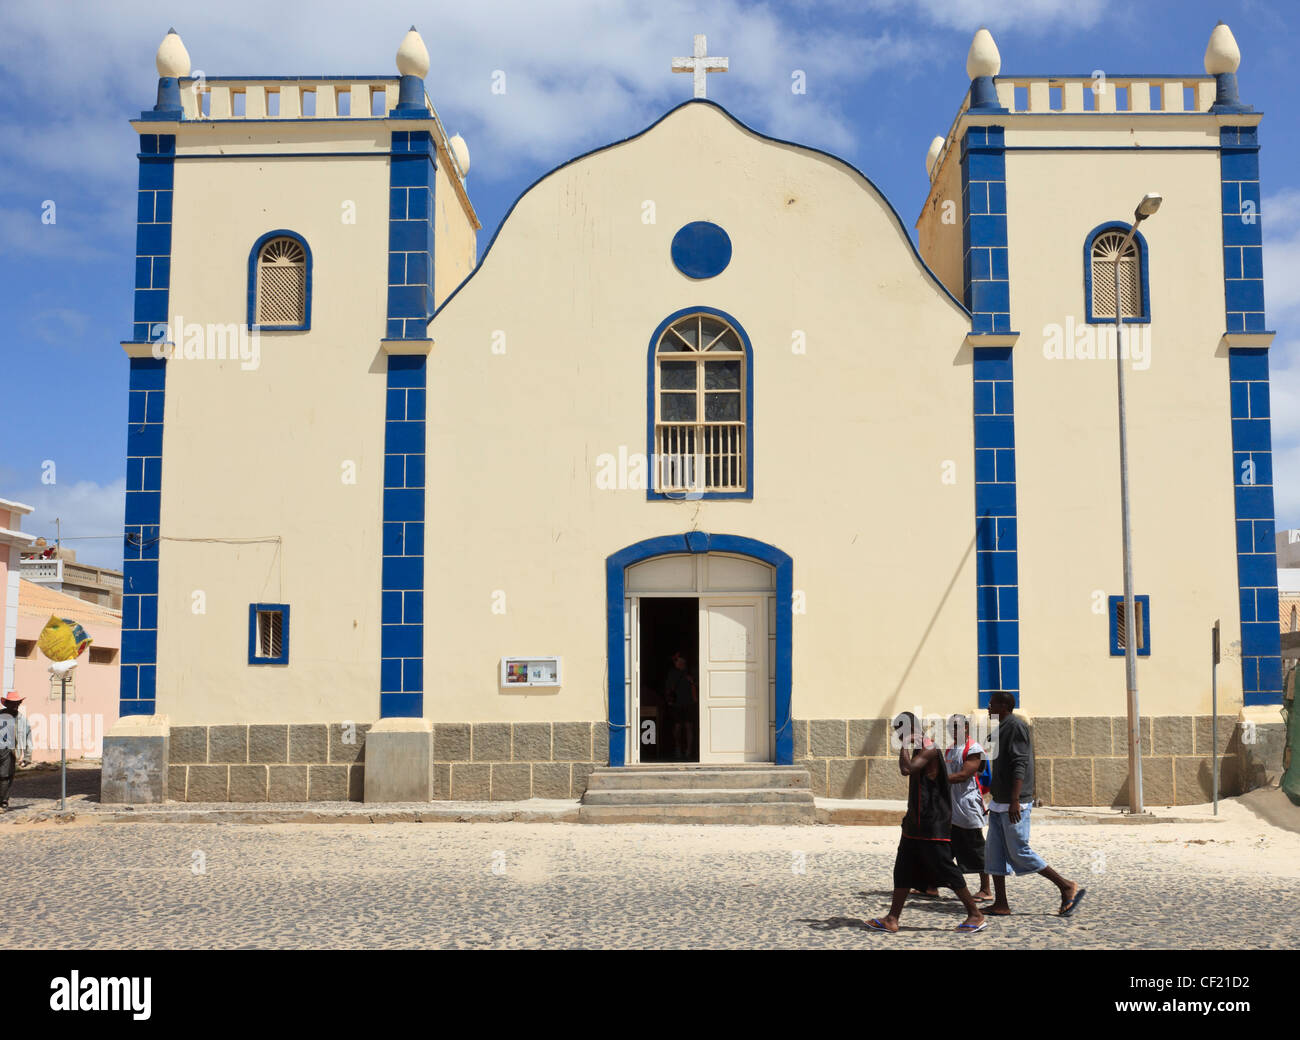 Colonial architecture of Catholic Church of St Isobel front. Largo Santa Isobel, Sal Rei, Boa Vista, Cape Verde - Stock Image